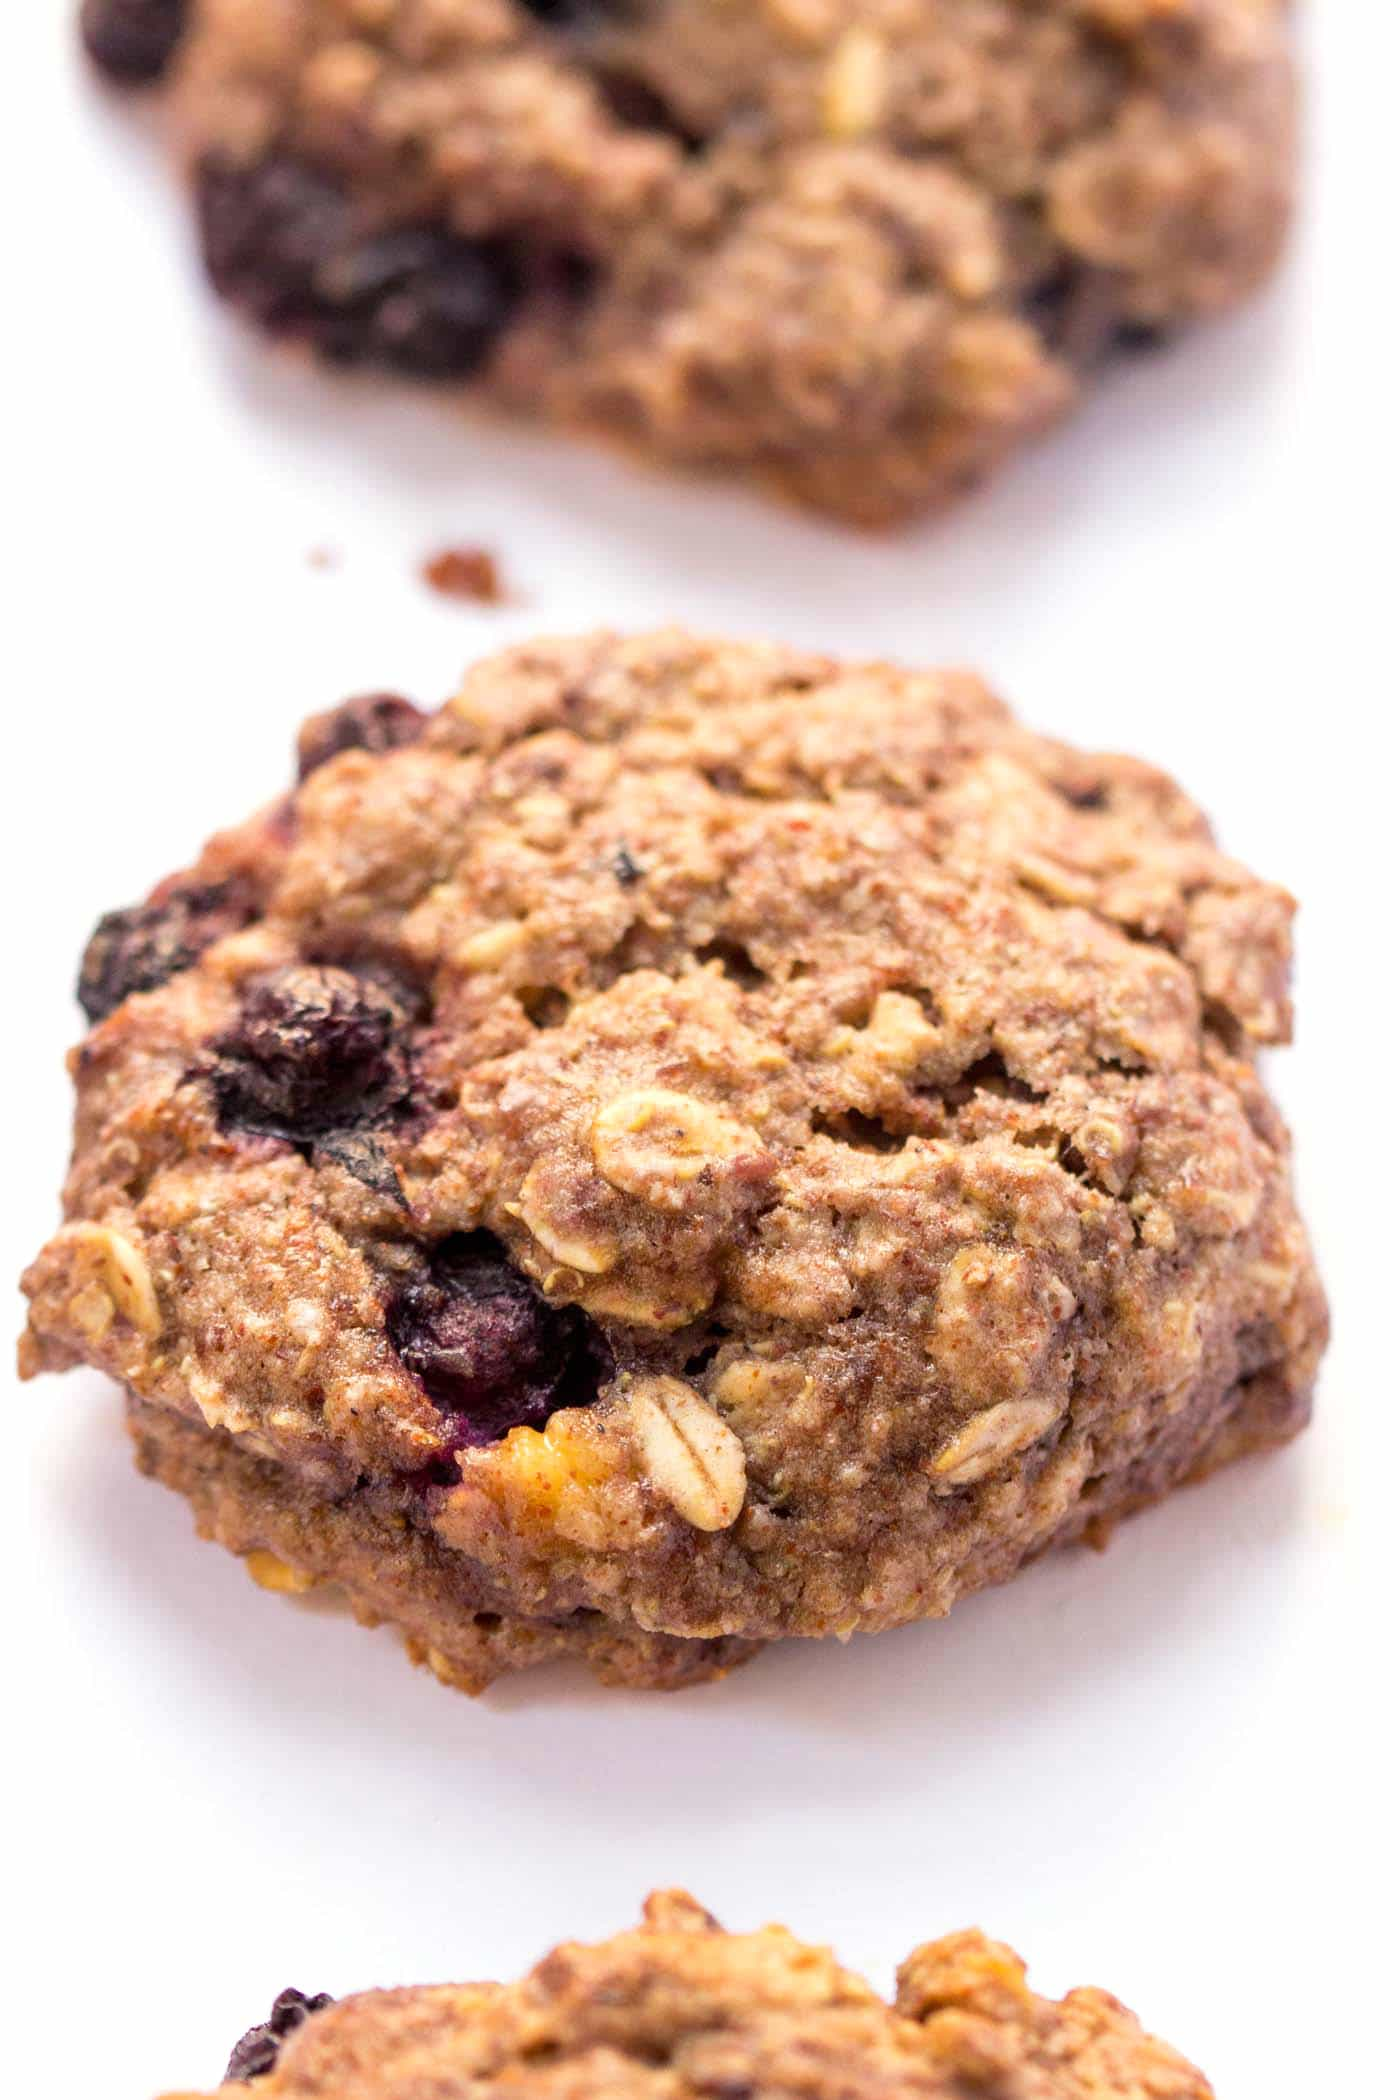 These VEGAN quinoa breakfast cookies taste like blueberry muffins but are SO much healthier! High protein, high fiber and low in sugar (also gluten-free!)